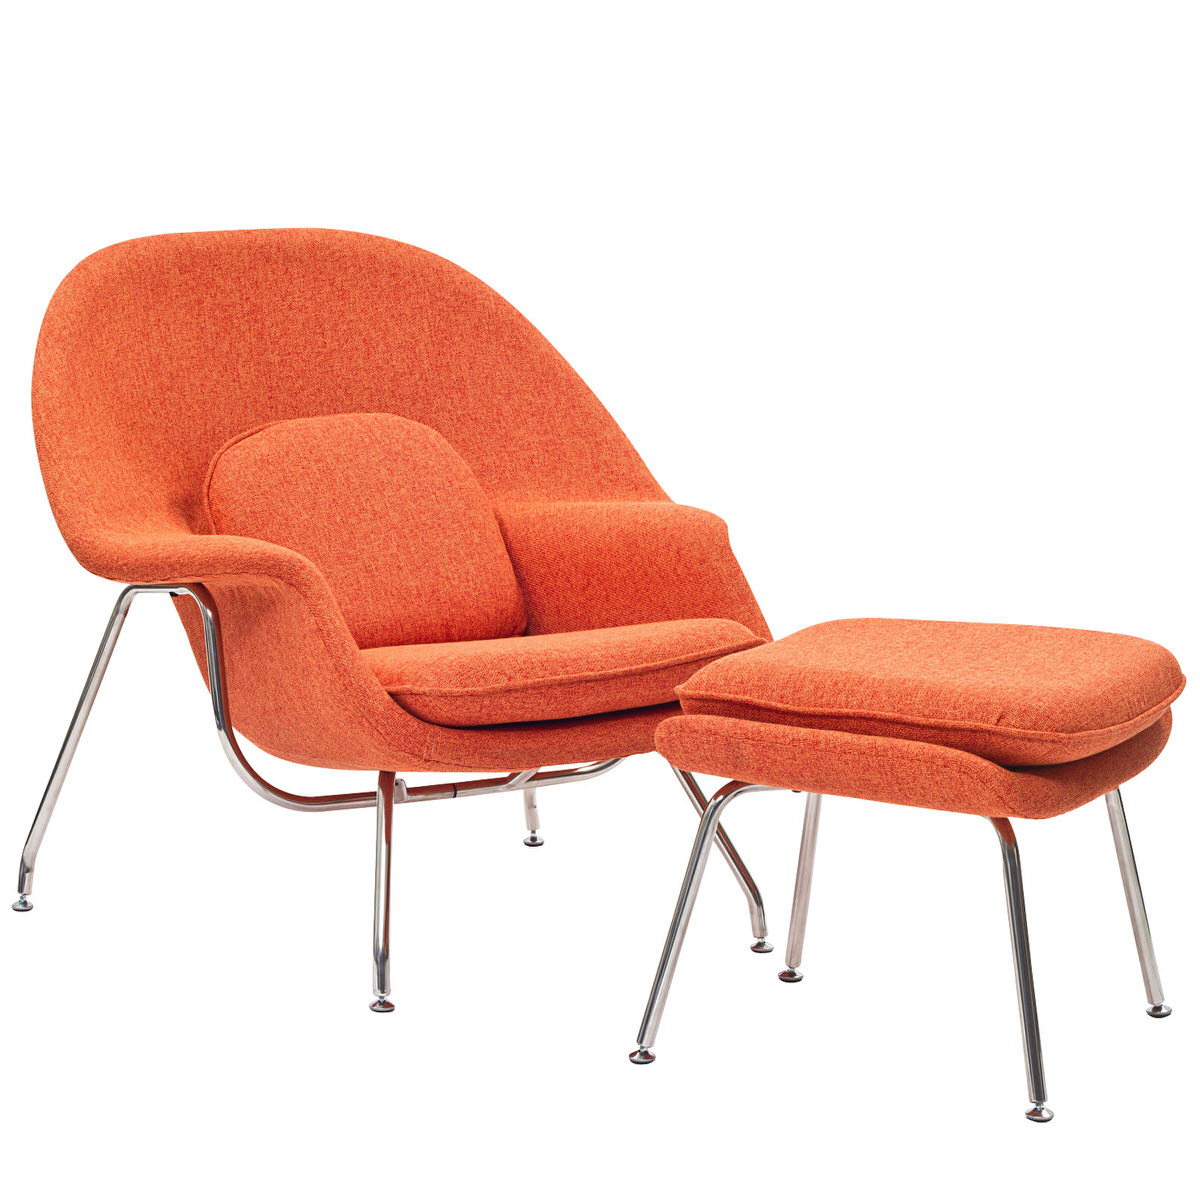 W Upholstered Fabric Lounge Chair With Ottoman Orange Tweed By Modway